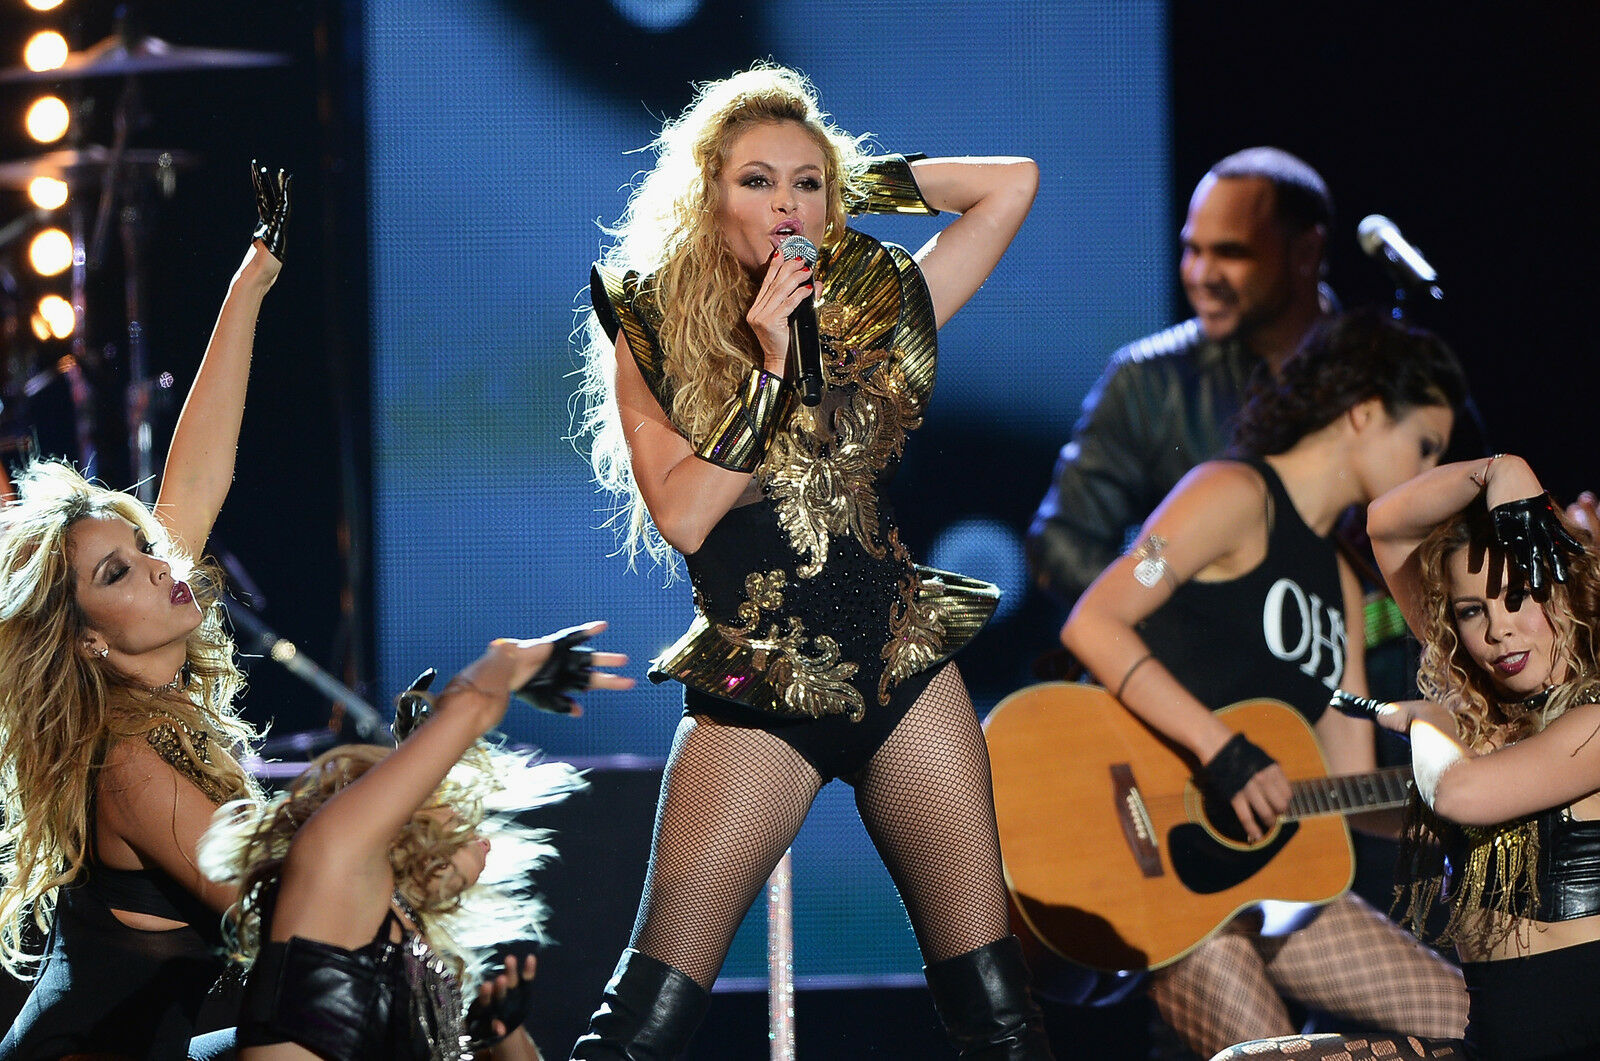 Image result for Paulina Rubio concert